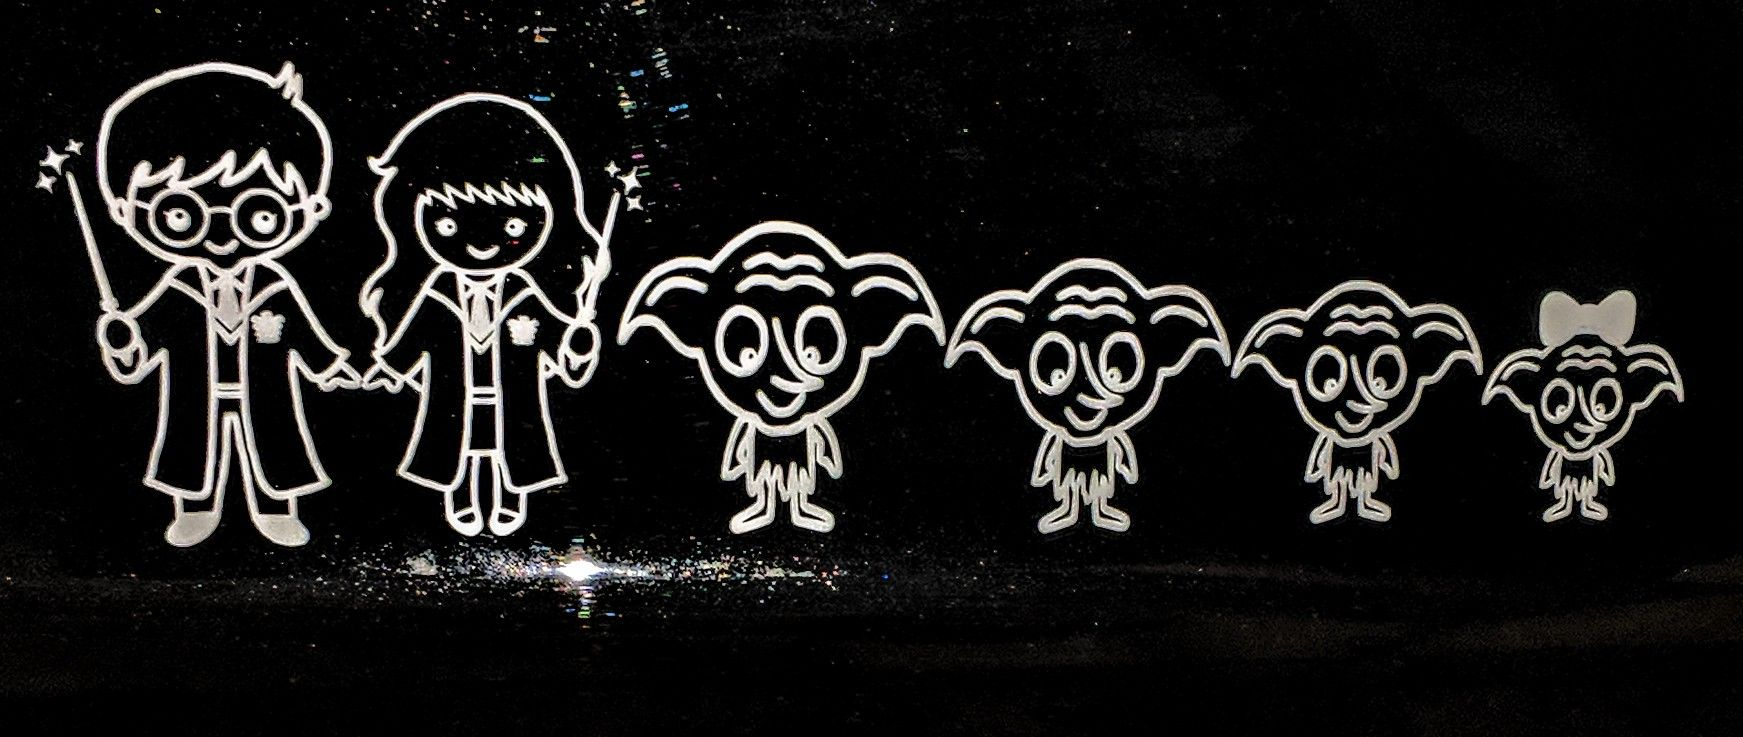 Harry Potter Inspired Family Decals Order From Shanlynn Creations On Etsy At Www Etsy Com Shop Shanlynncreations Family Decals Family Car Decals Vinyl Gifts [ 737 x 1743 Pixel ]